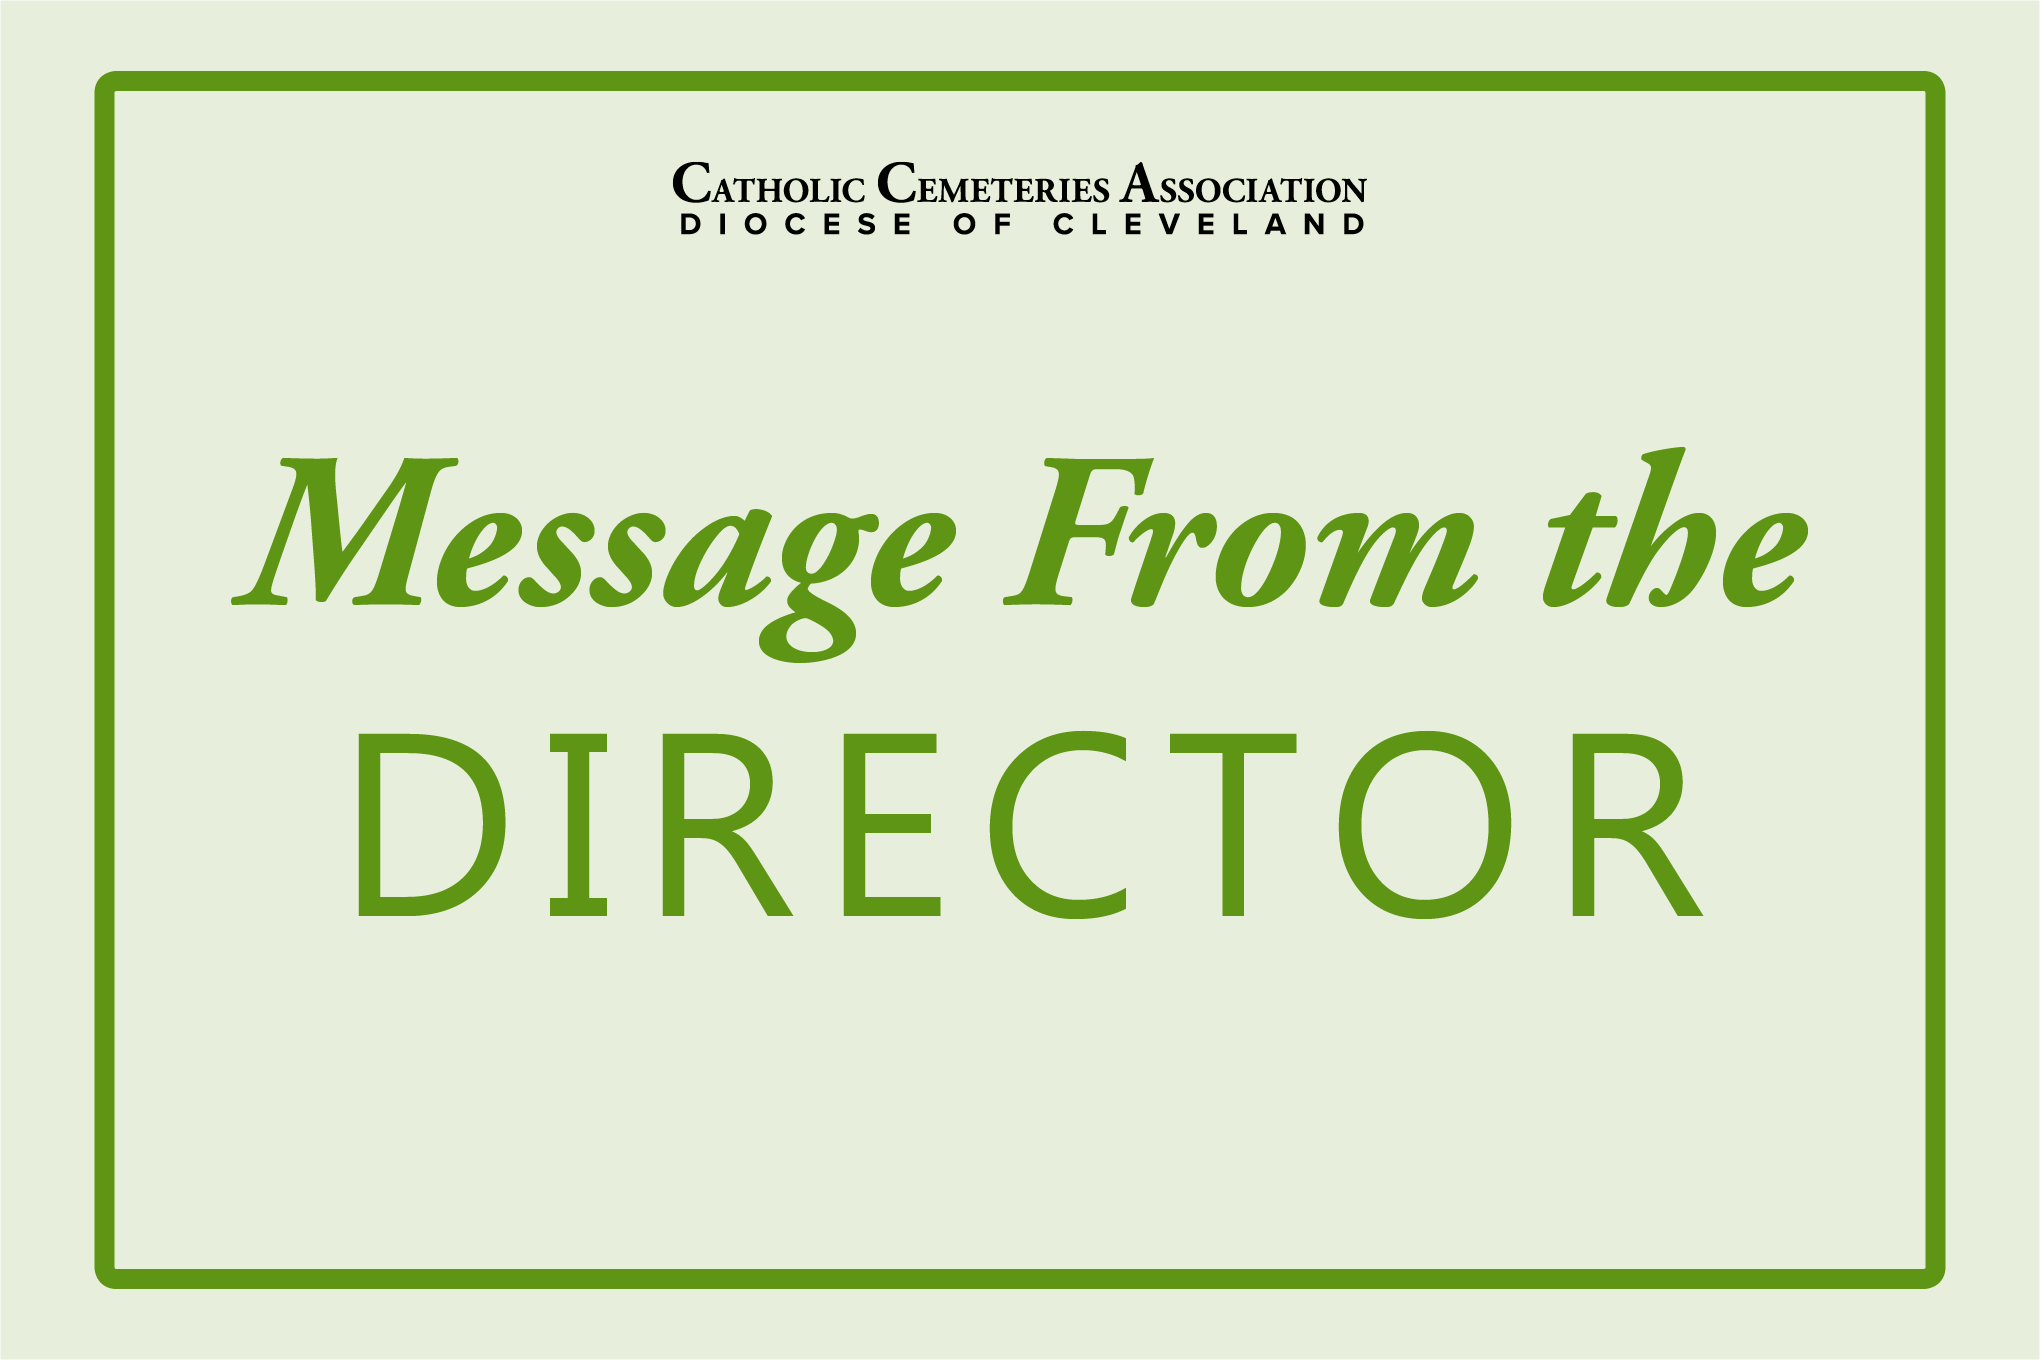 message from the director header image